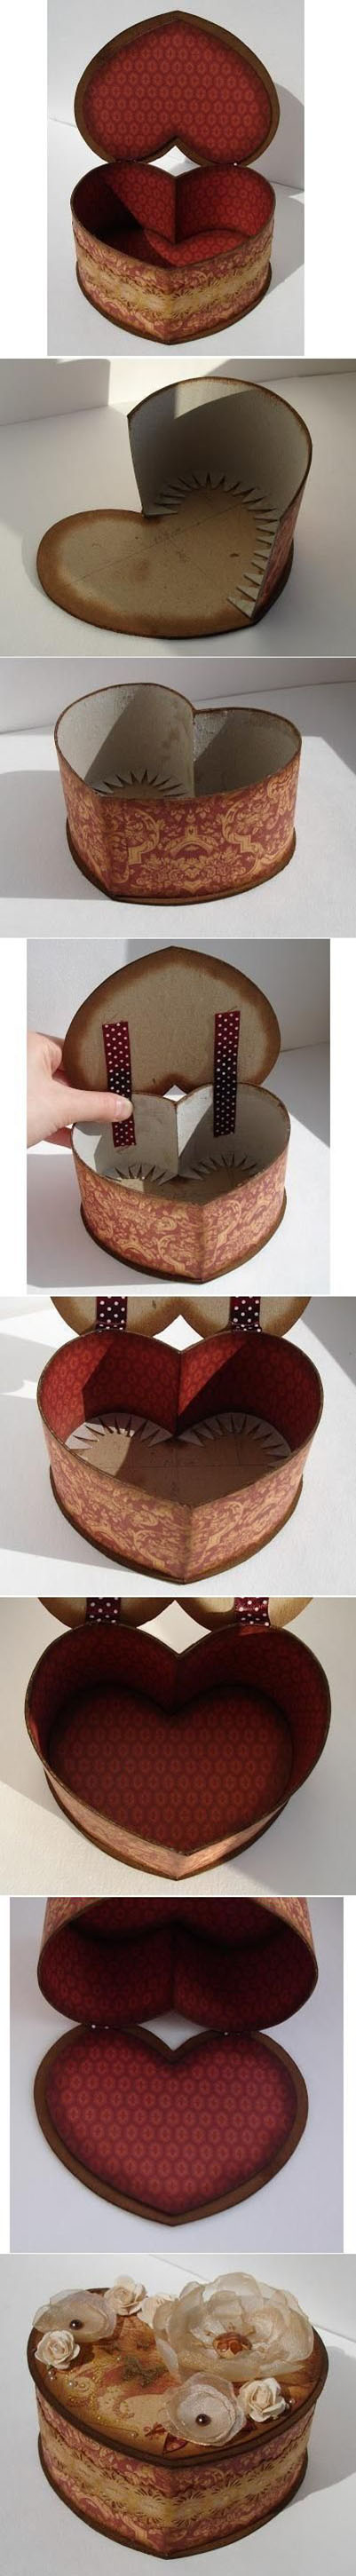 13  DIY Cardboard Heart Shaped Boxa0df